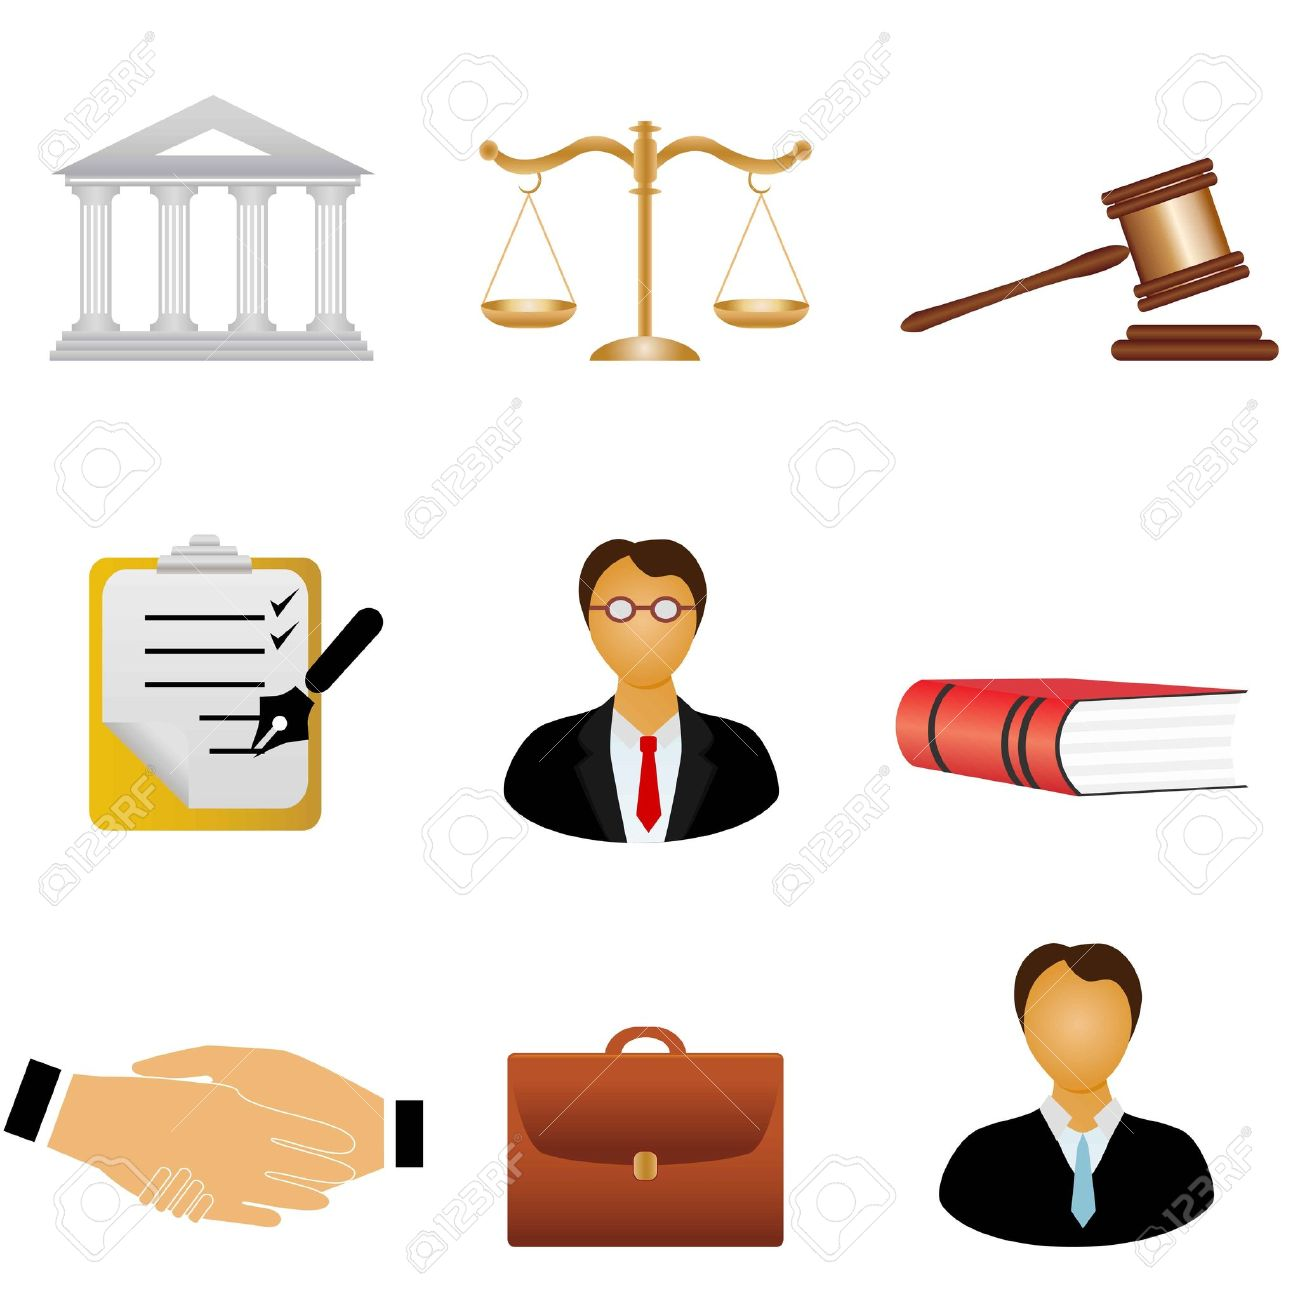 Law And Justice Related Symbols Royalty Free Cliparts Vectors And